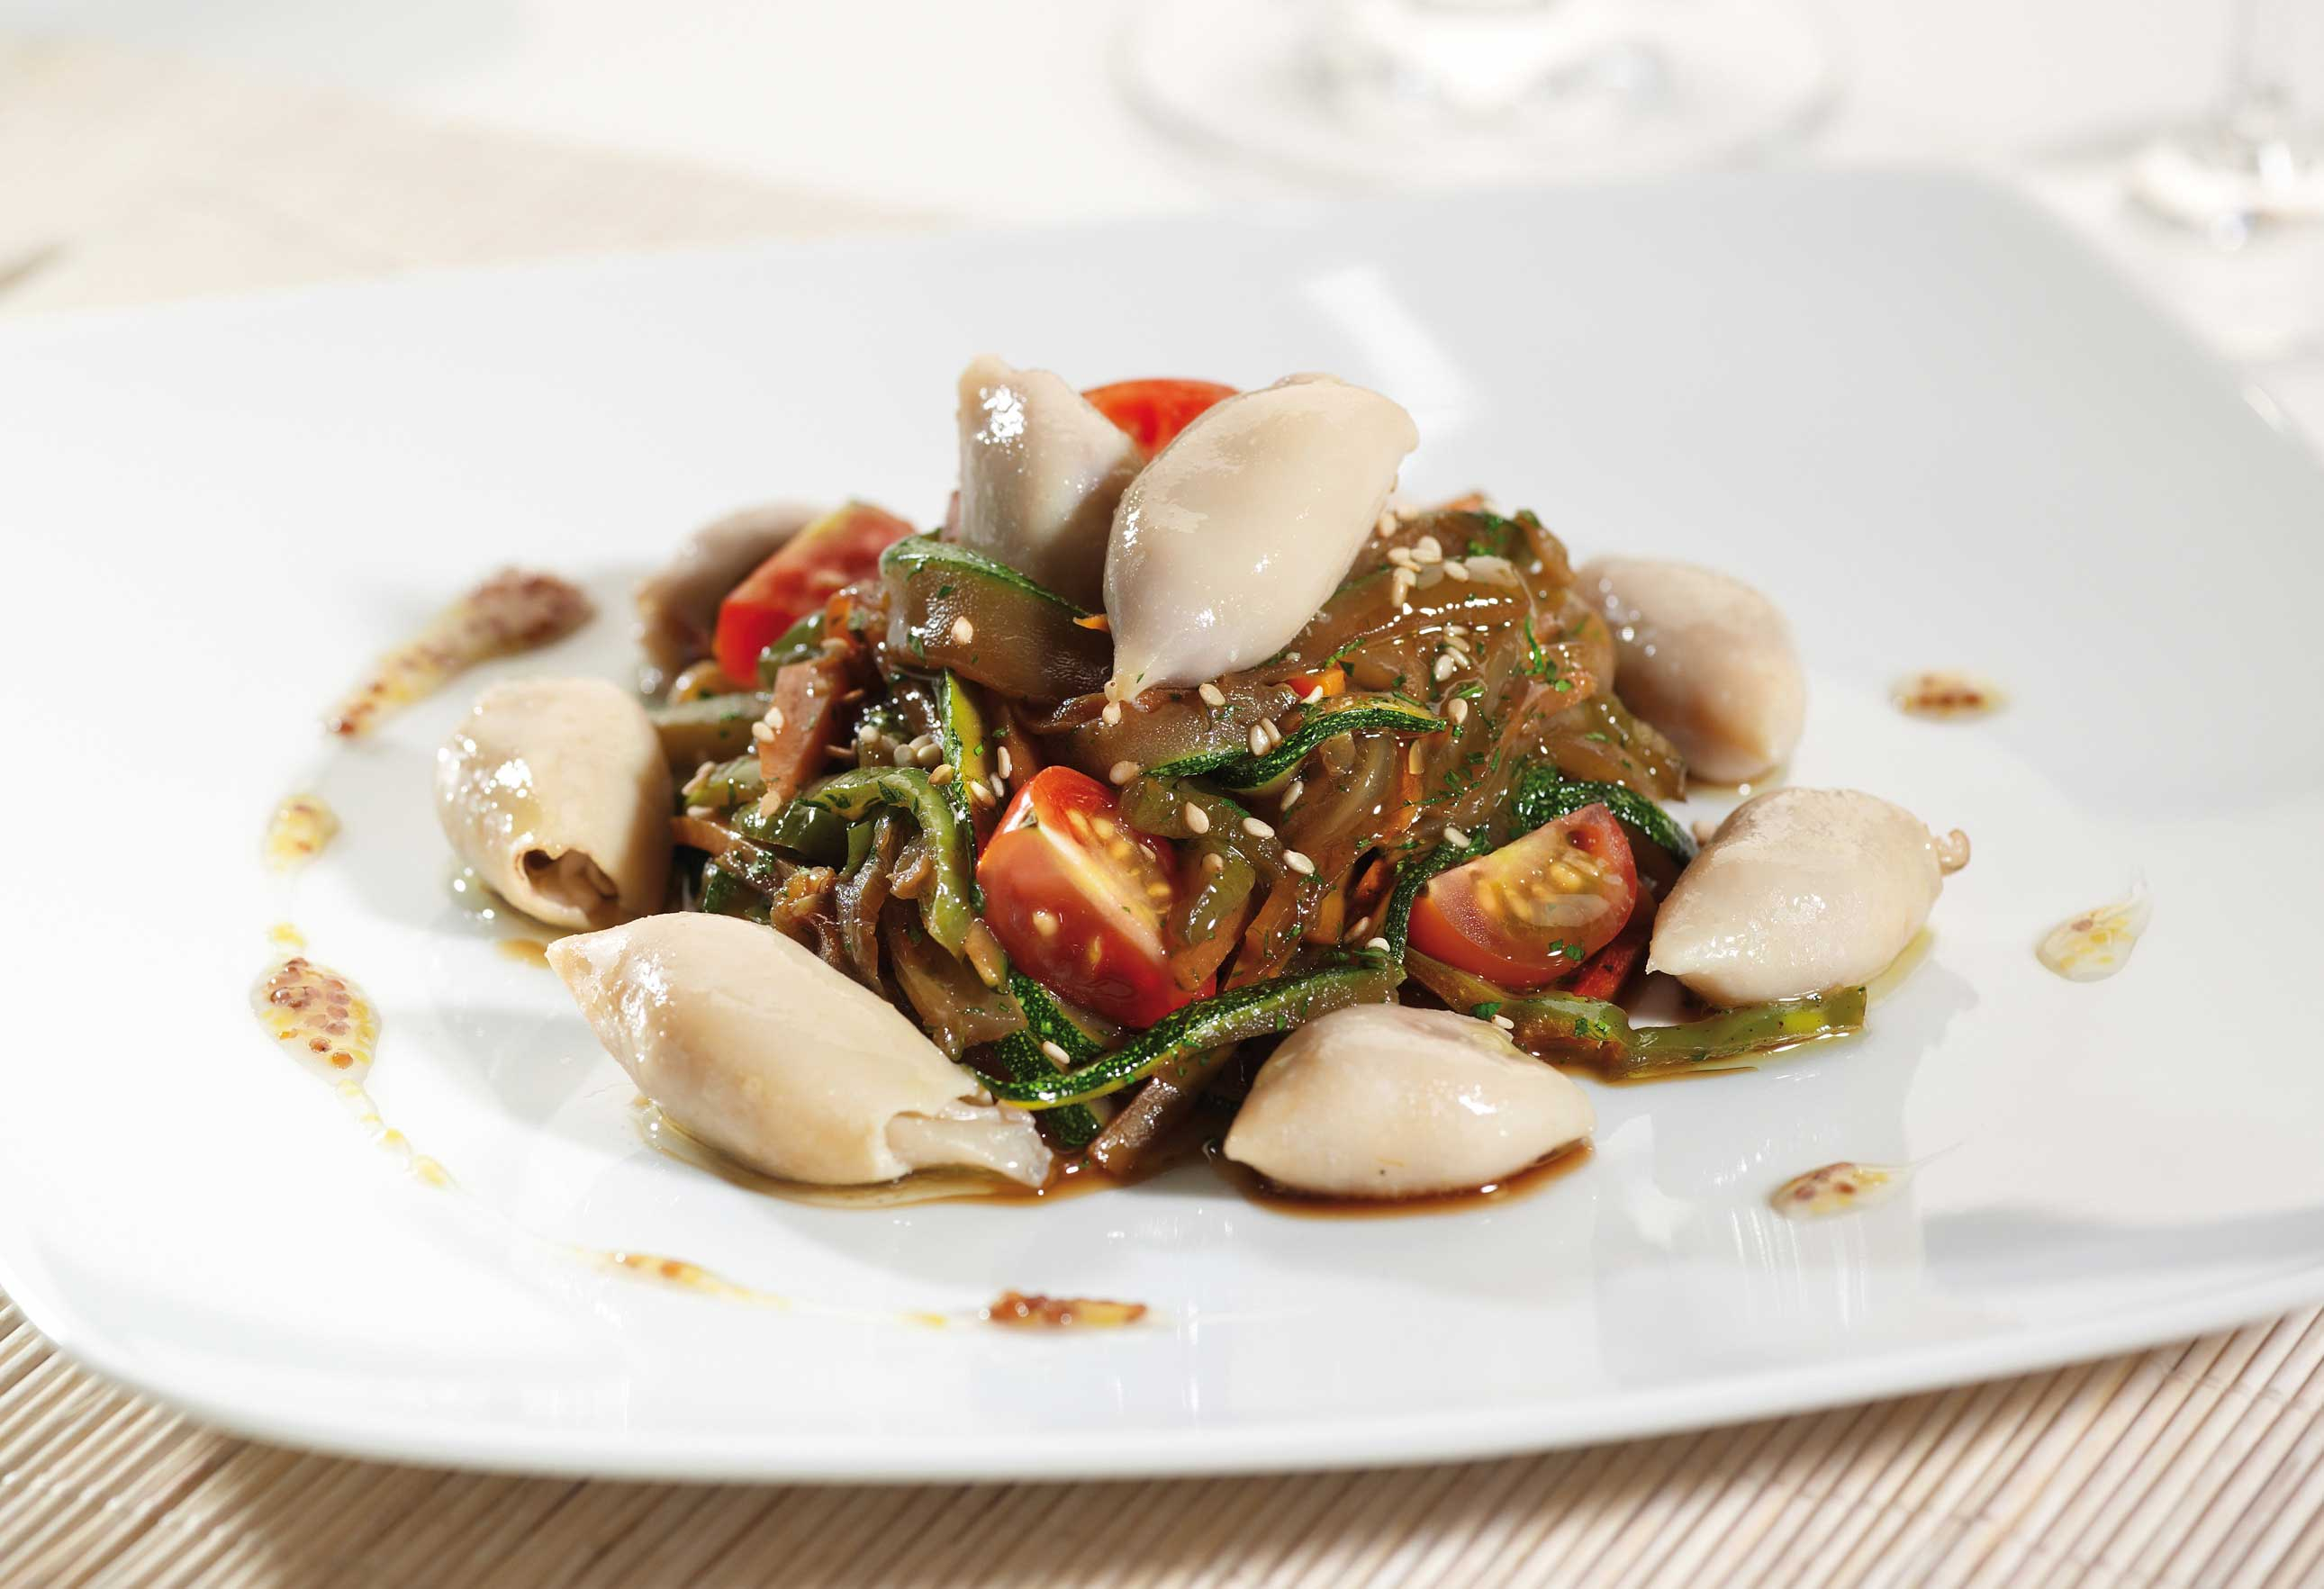 Vegetables sautéed with squid